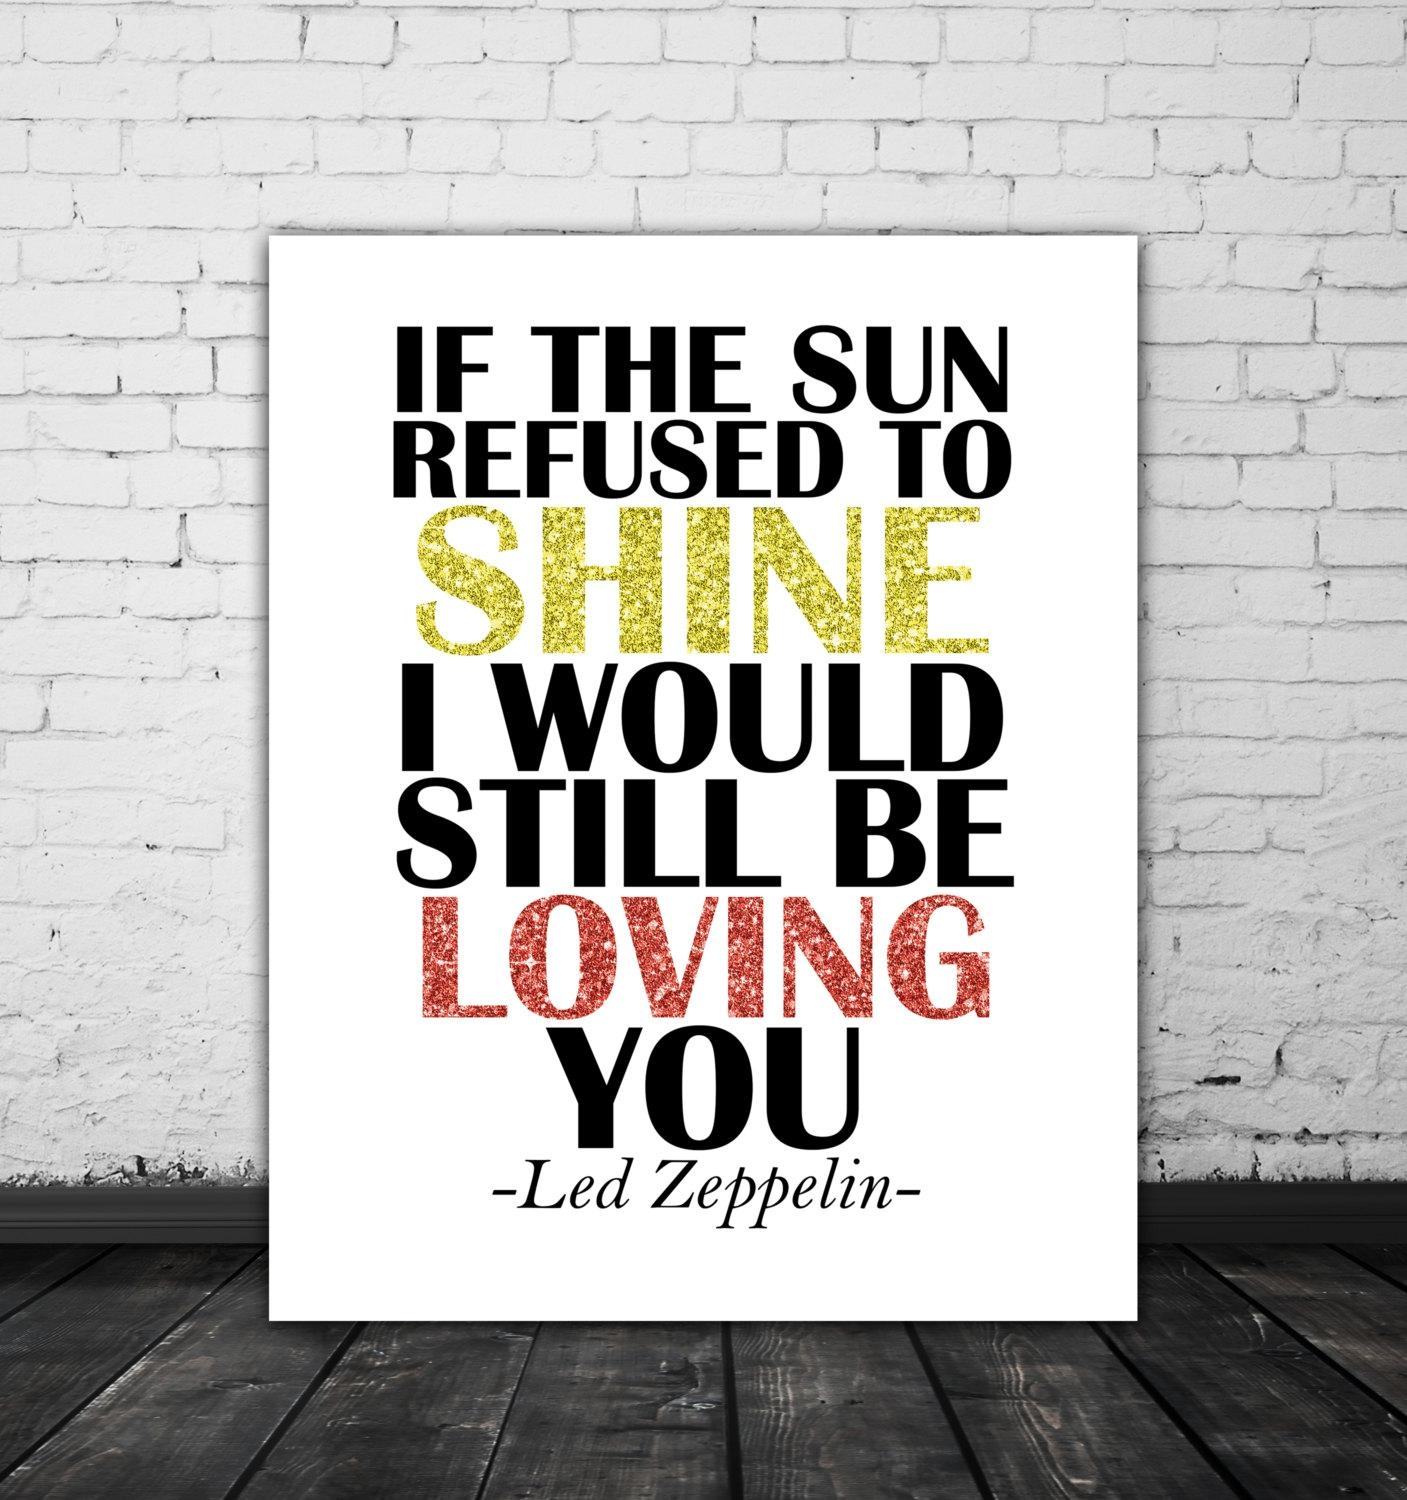 Led Zeppelin Lyrics Love Song Lyric Art Music Poster Led Inside Led Zeppelin Wall Art (Image 7 of 20)